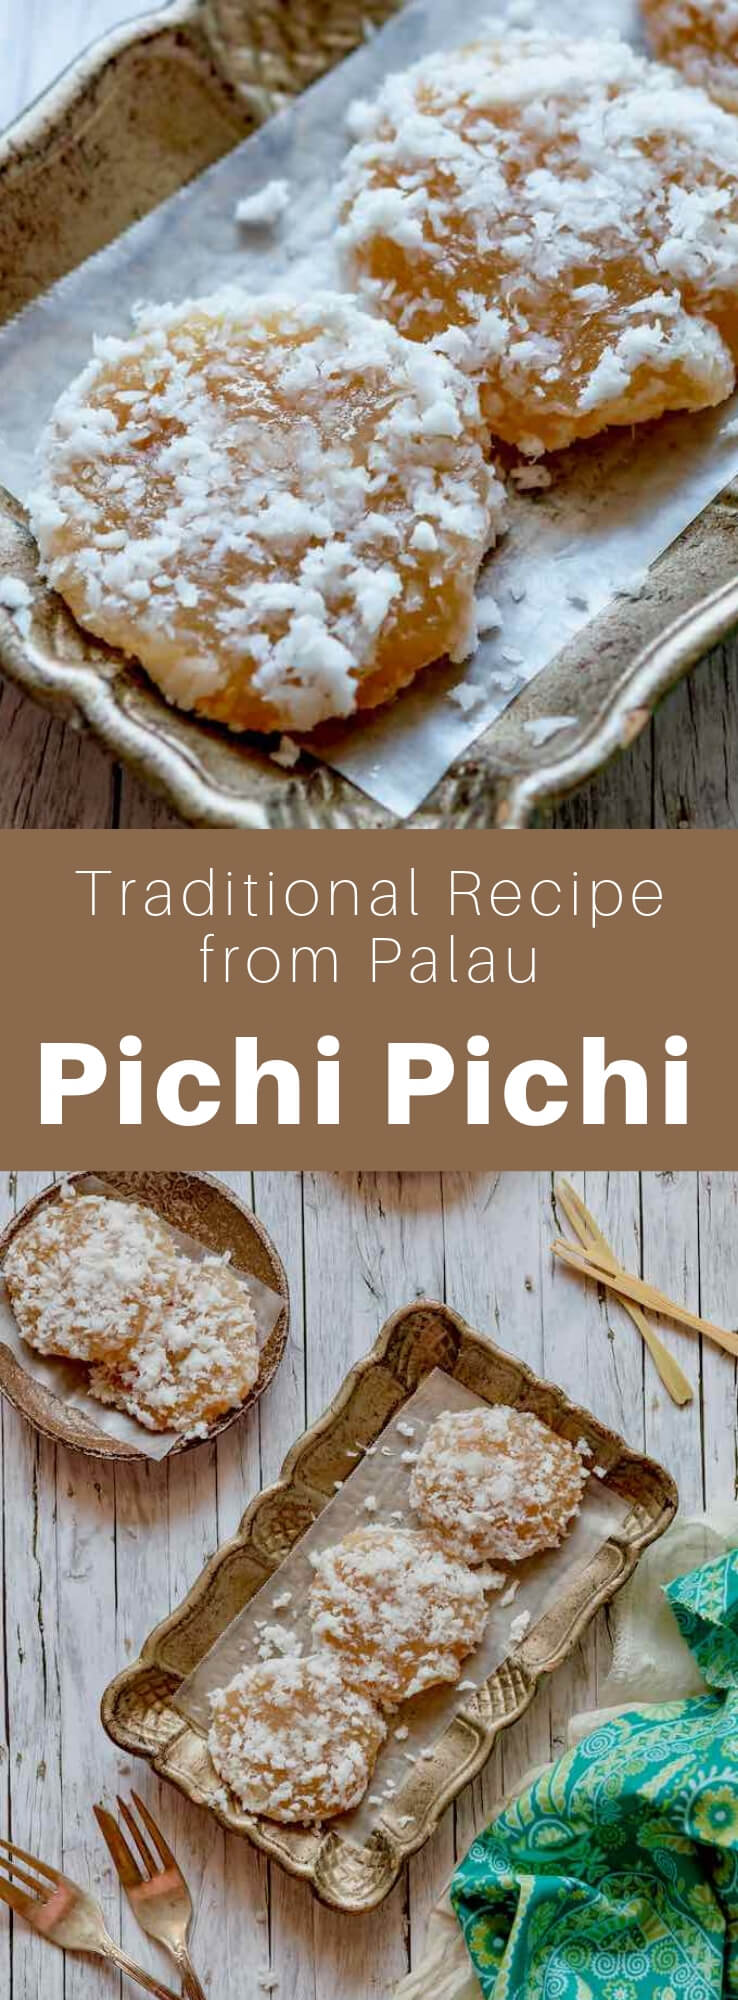 Pichi pichi is a steamed gelatinous dessert made from cassava and sugar, that is traditional in the Philippines and Palau. #Philippines #Palau #FilipinoCuisine #PalauanCuisine #FilipinoFood #PalauanFood #FilipinoRecipe #PalauanRecipe #SouthPacificCuisine #SouthPacificFood #IslandCuisine #WorldCuisine #196flavors